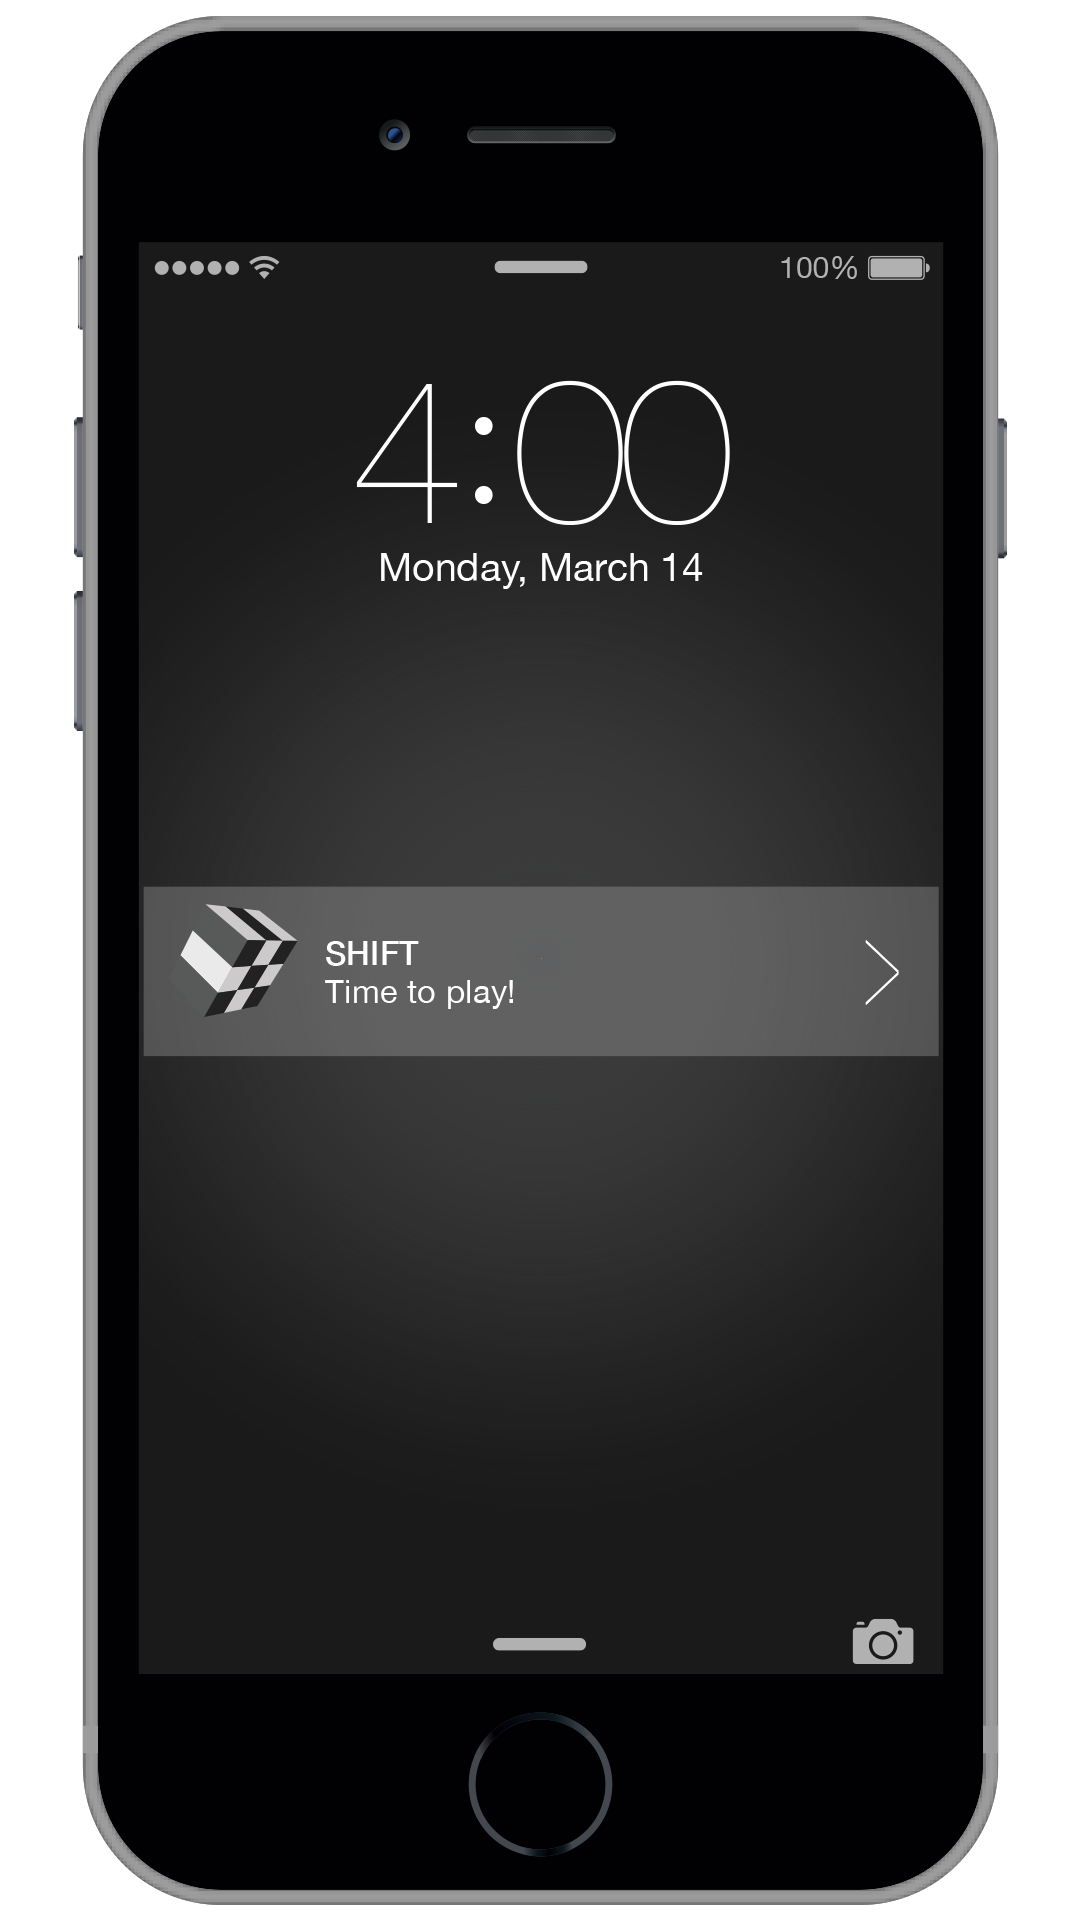 The app runs an alarm, scheduling play time throughout the day.